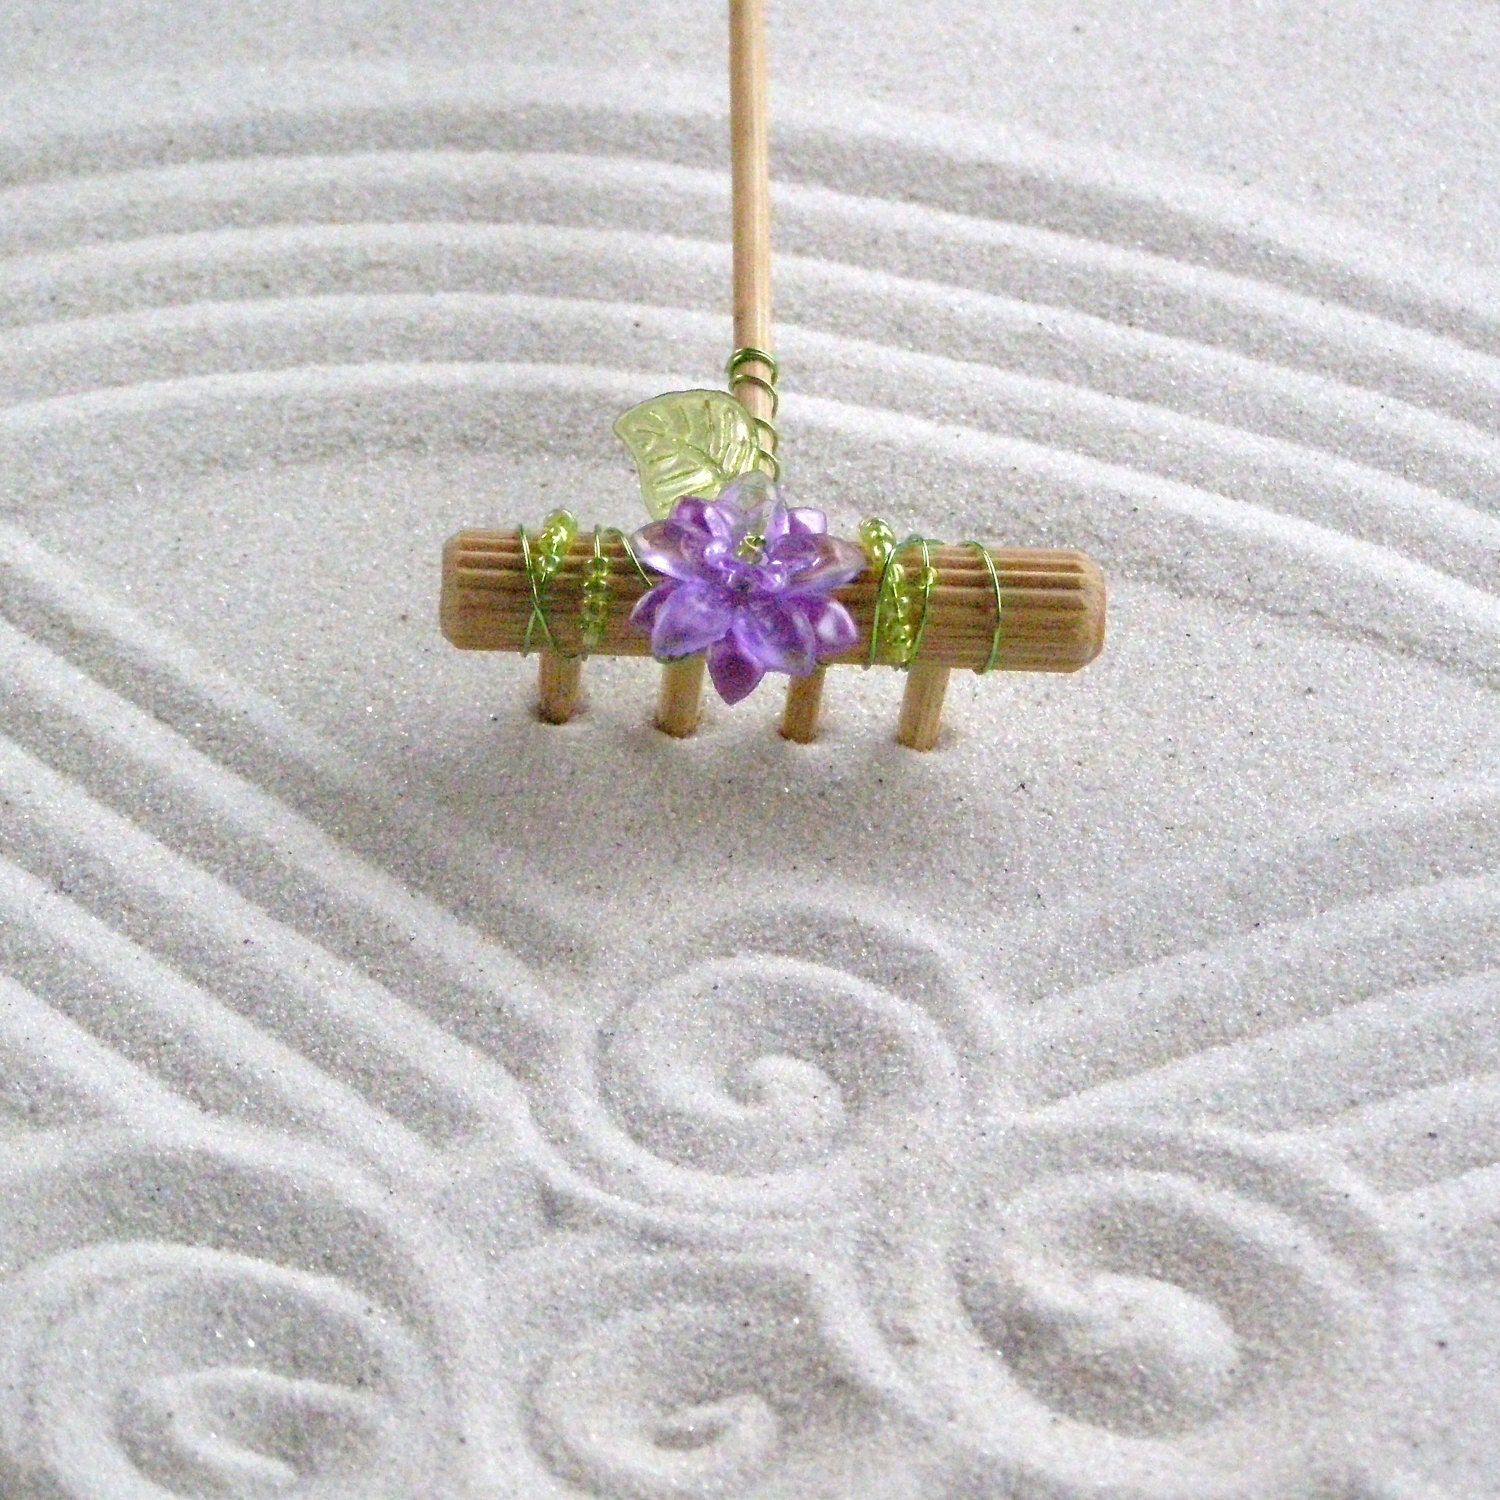 Mini tabletop zen garden rake handmade in oregon u s a for Table zen garden